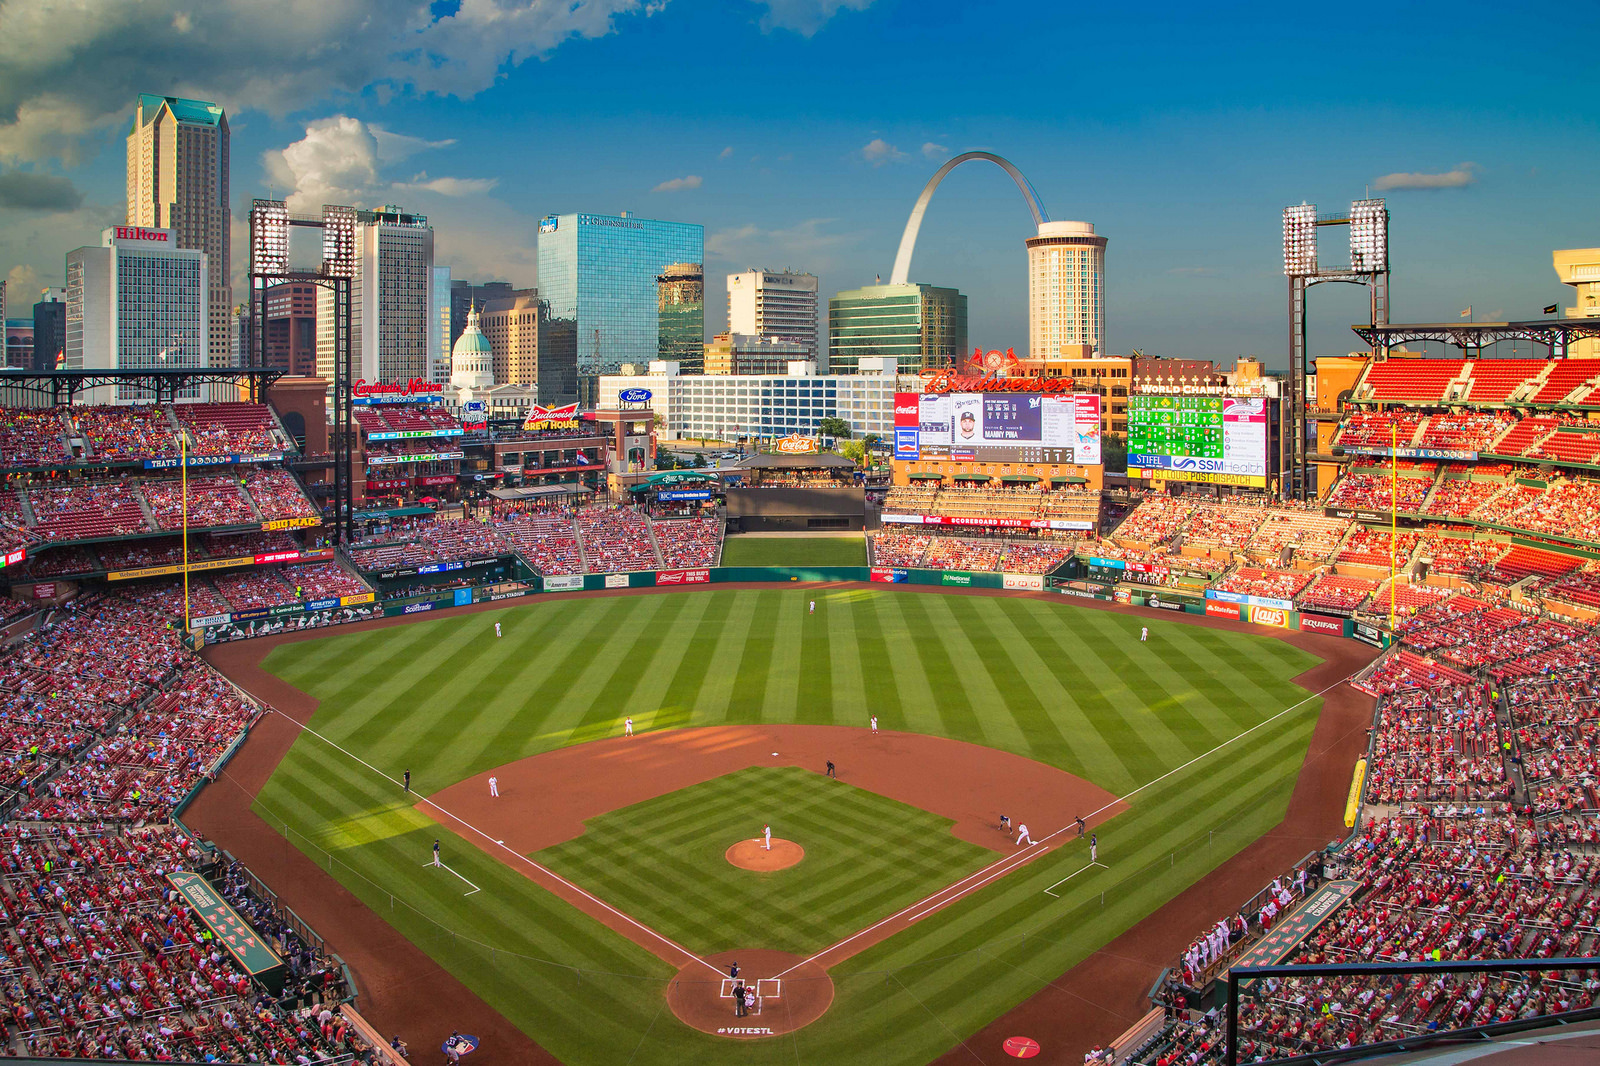 View from the upper deck at Busch Stadium, home of the St. Louis Cardinals